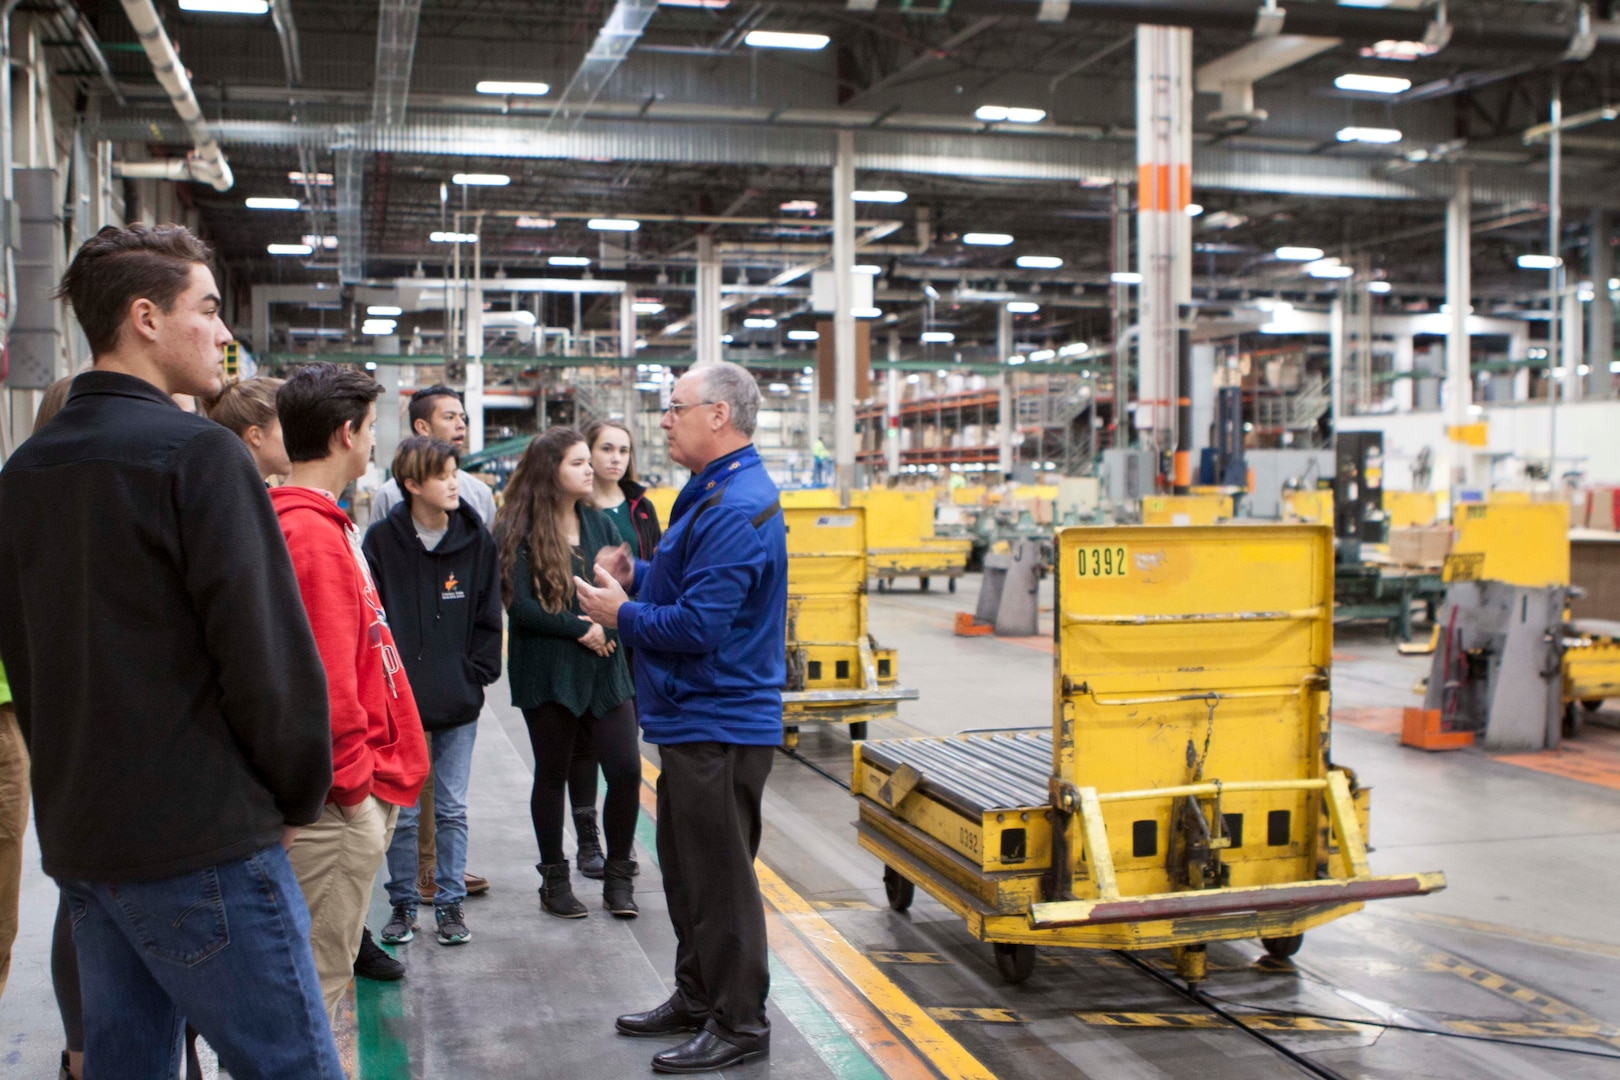 Students from Central York High School tour the Eastern Distribution Center at DLA Distribution Susquehanna, Pa., with employee Ron Hunziker.